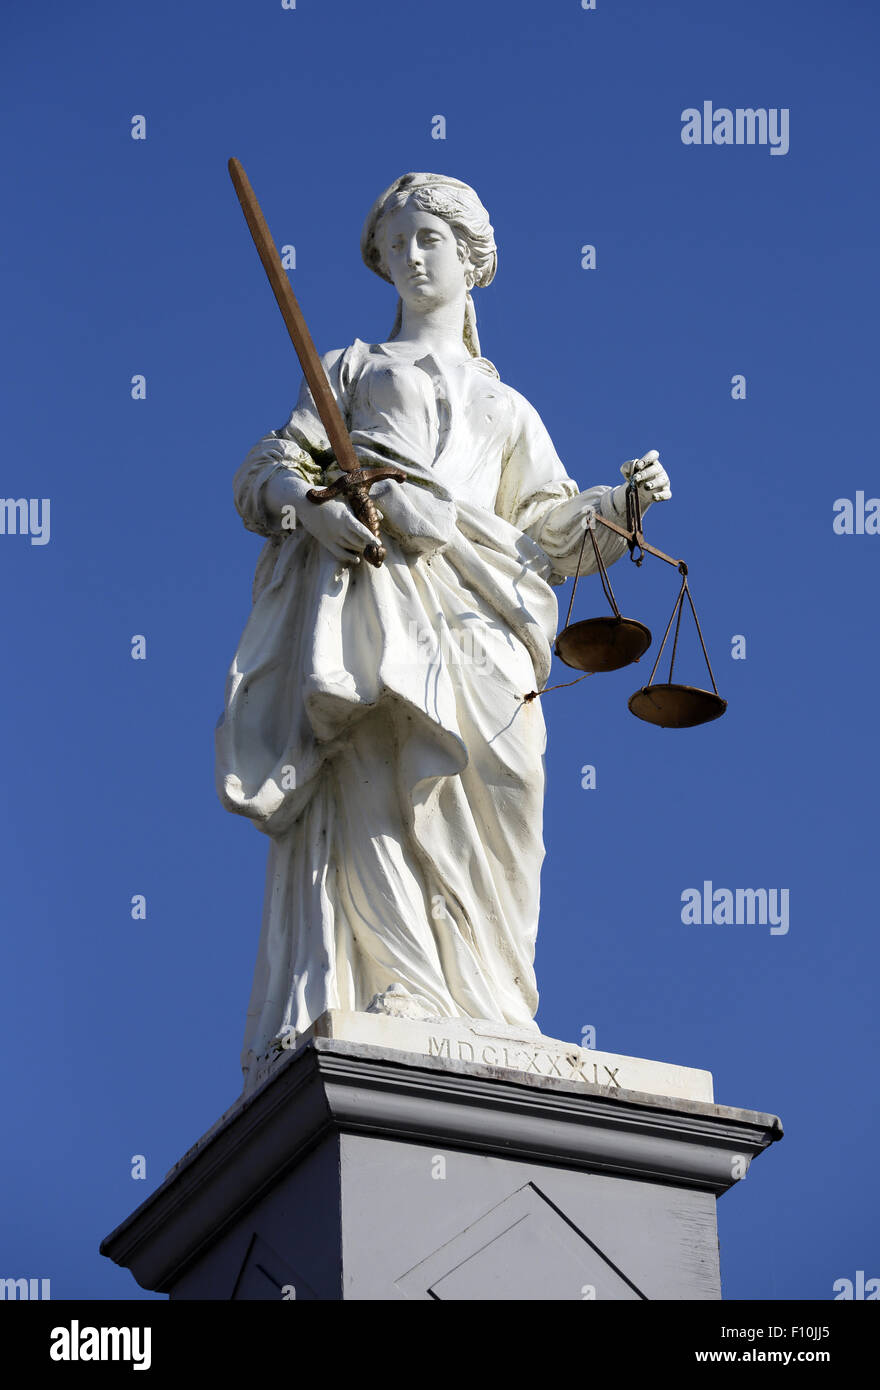 Lady justice statue. - Stock Image